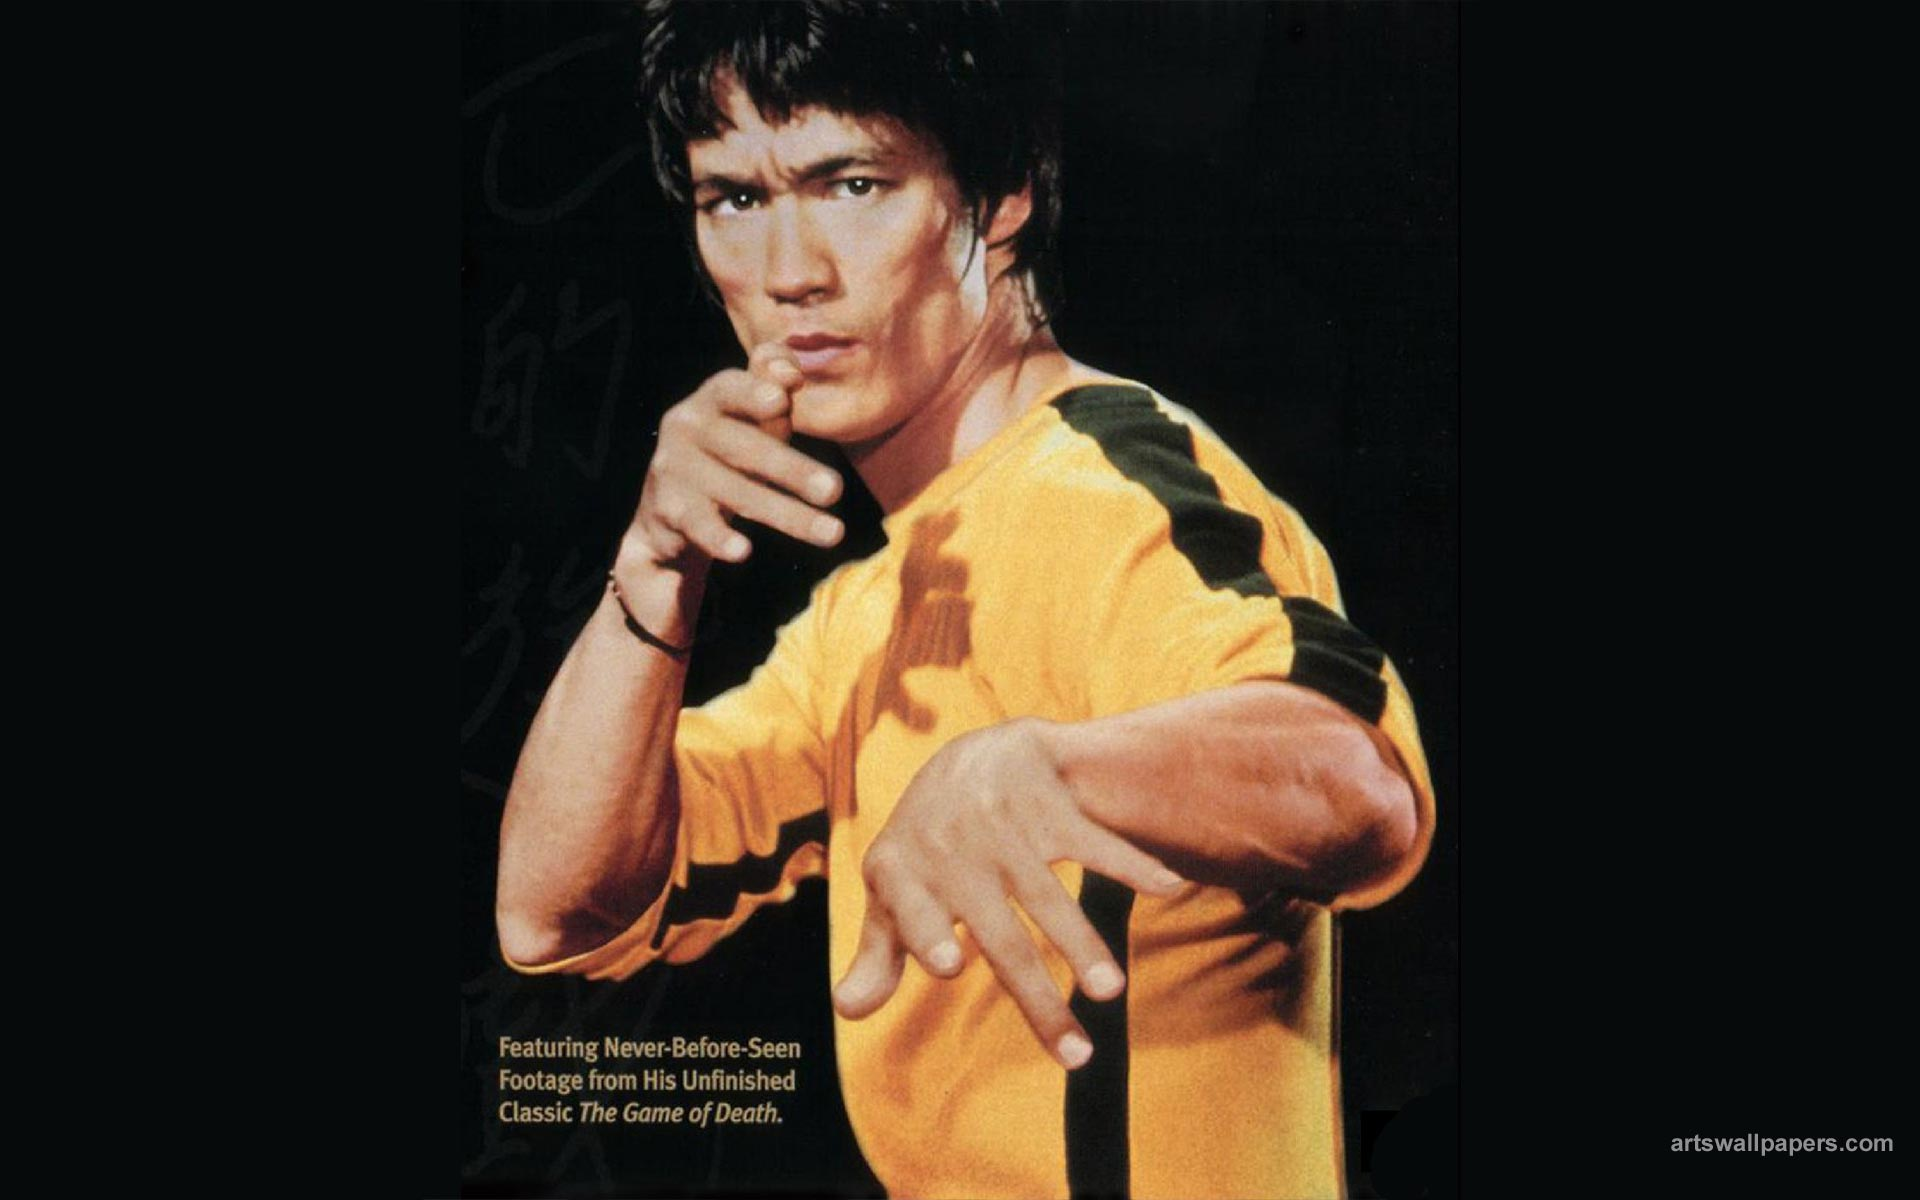 Bruce Lee Hd Wallpapers APK  Download Bruce Lee Hd Wallpapers  Oh yeah! My first Asian crush Bruce Lee Iphone Backgrounds Hd Hd Wallpapers Backgrounds 1920x1200